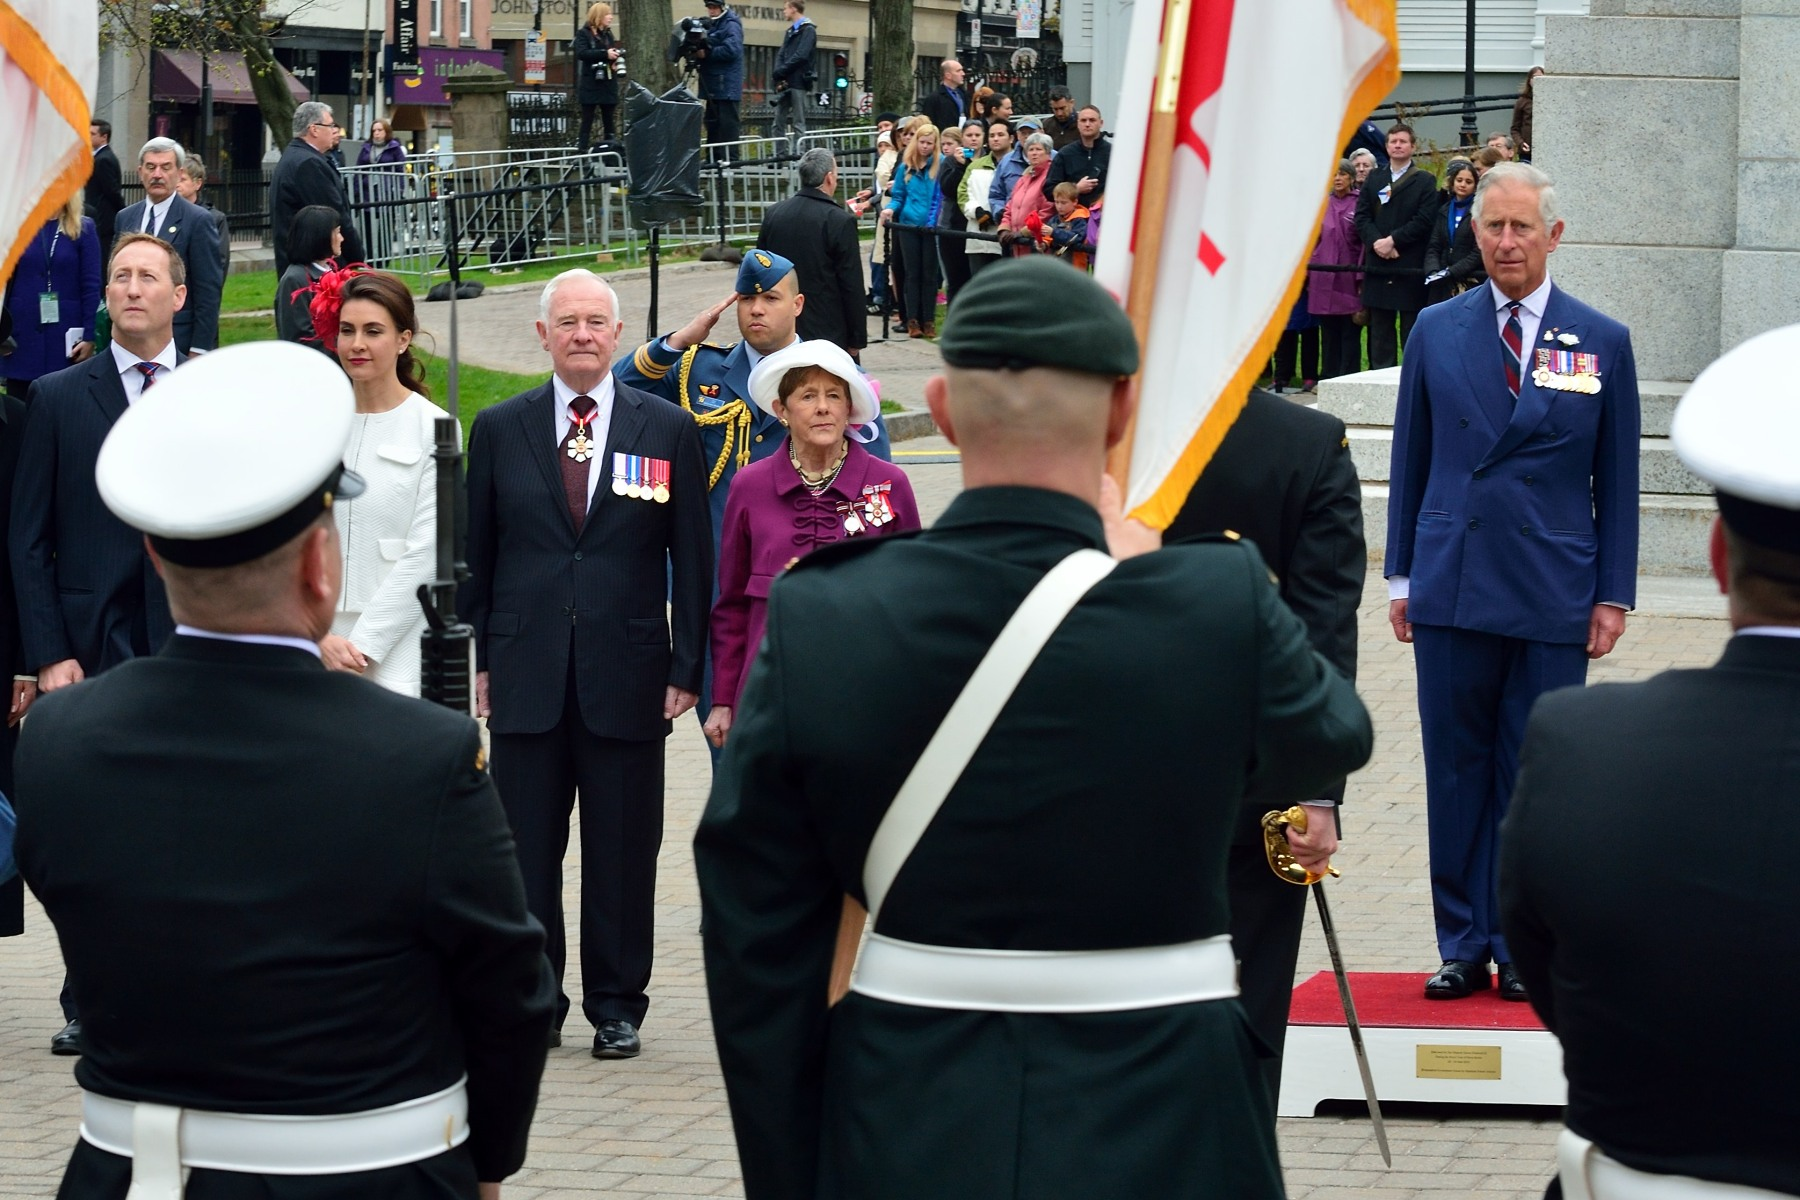 The Prince of Wales has been visiting Canada for almost 45 years. He has visited Canada from coast to coast to coast.